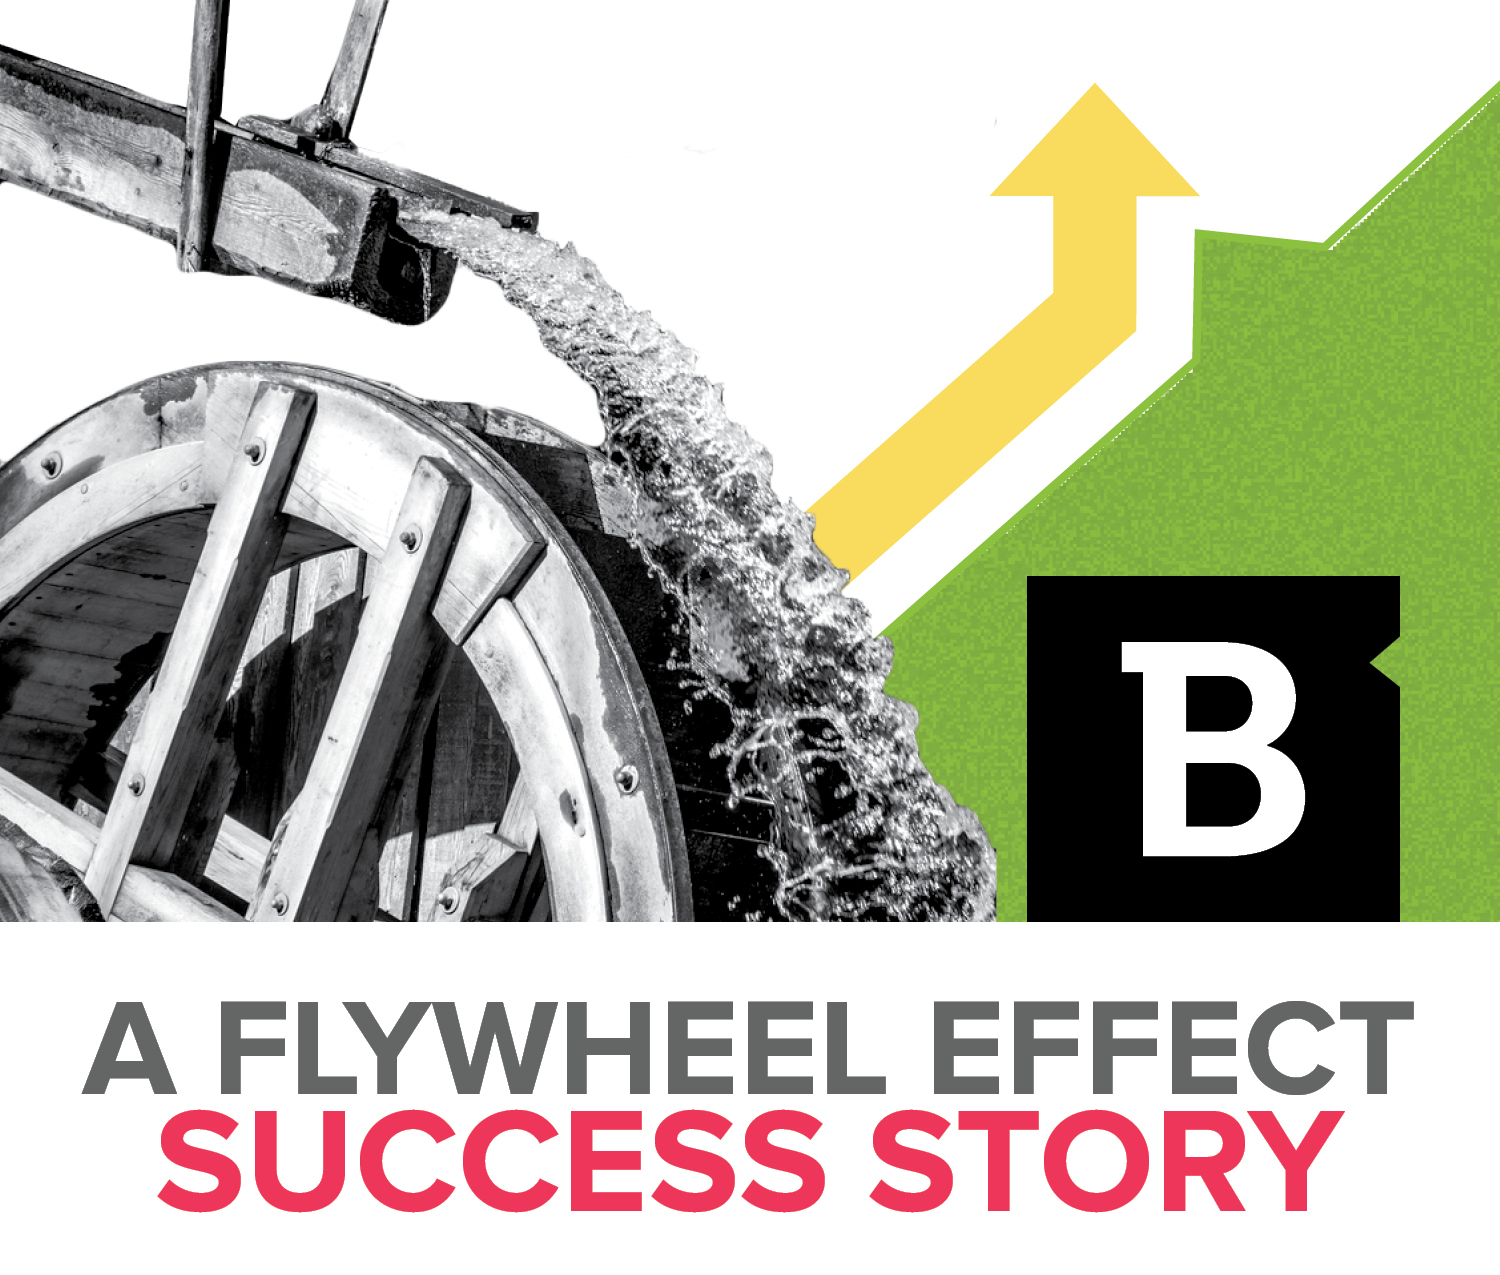 Content marketing and SEO are like a flywheel - they take effort to get started, but then gain a life of their own.